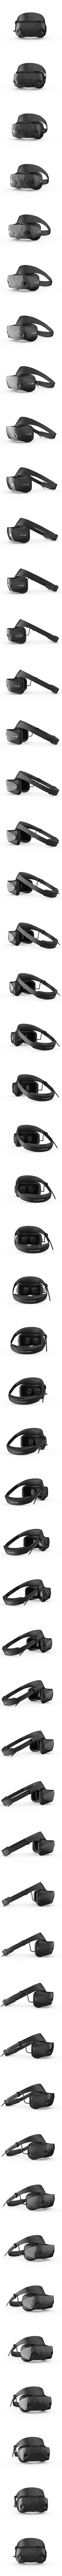 ASUS Headset Windows Mixed Reality headset